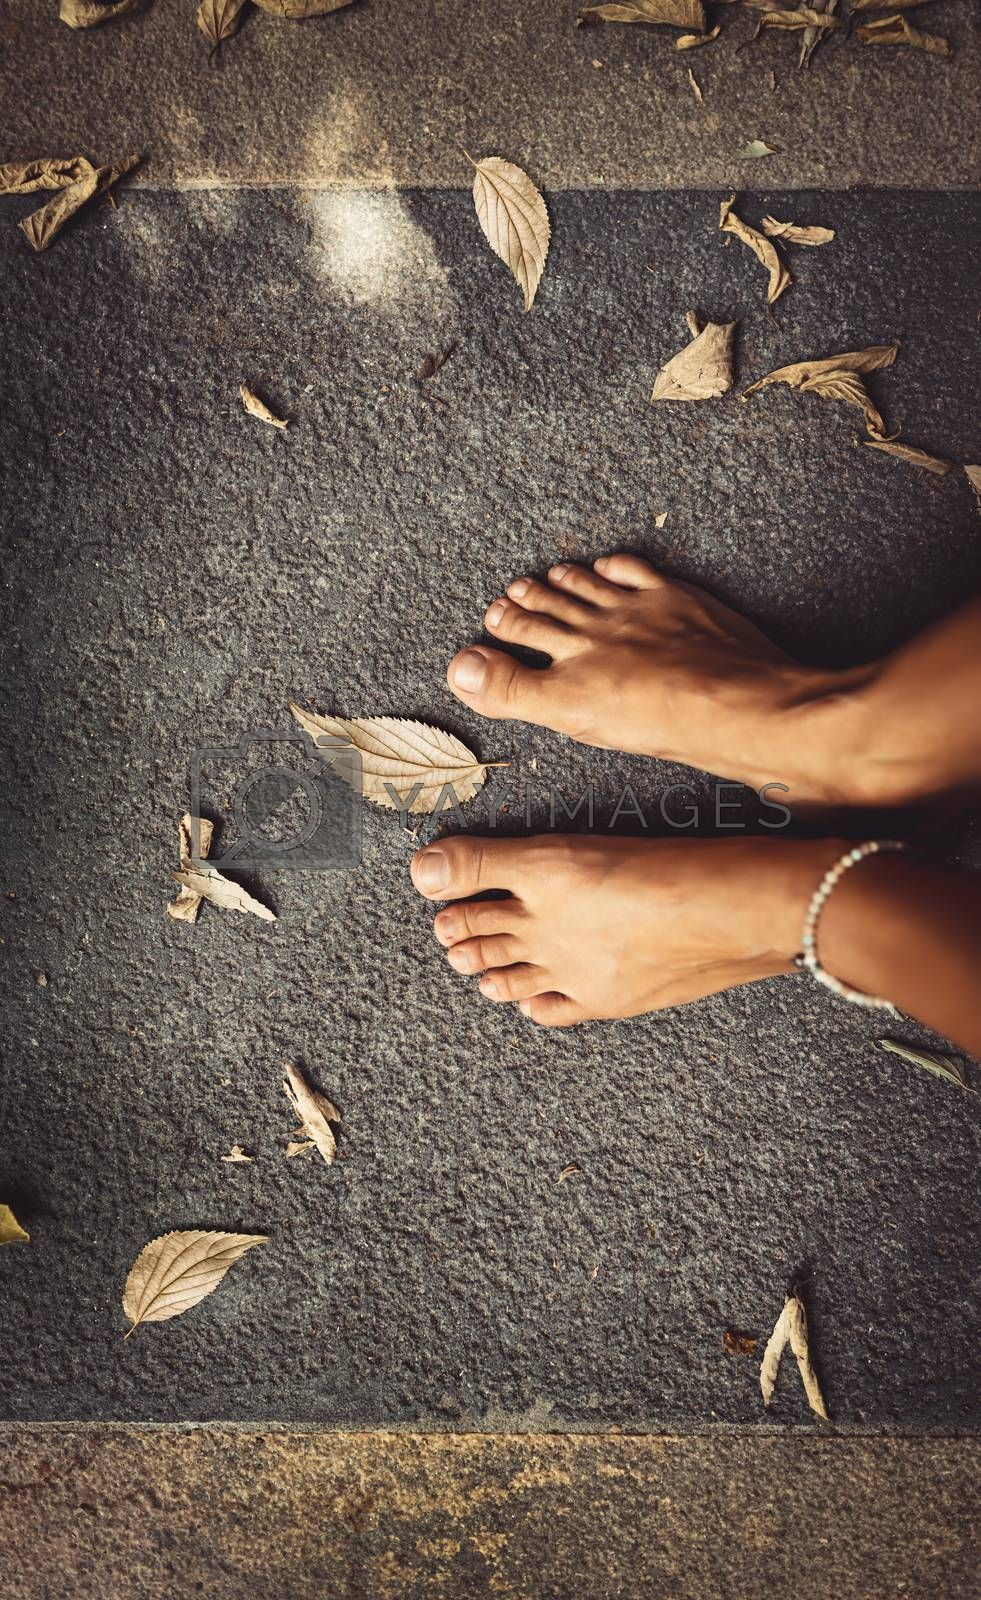 Welcome Fall Background. Closeup Concept Photo of a Barefoot Women Feet and Dry Leaves. Autumn Season Theme. Summer is Over.